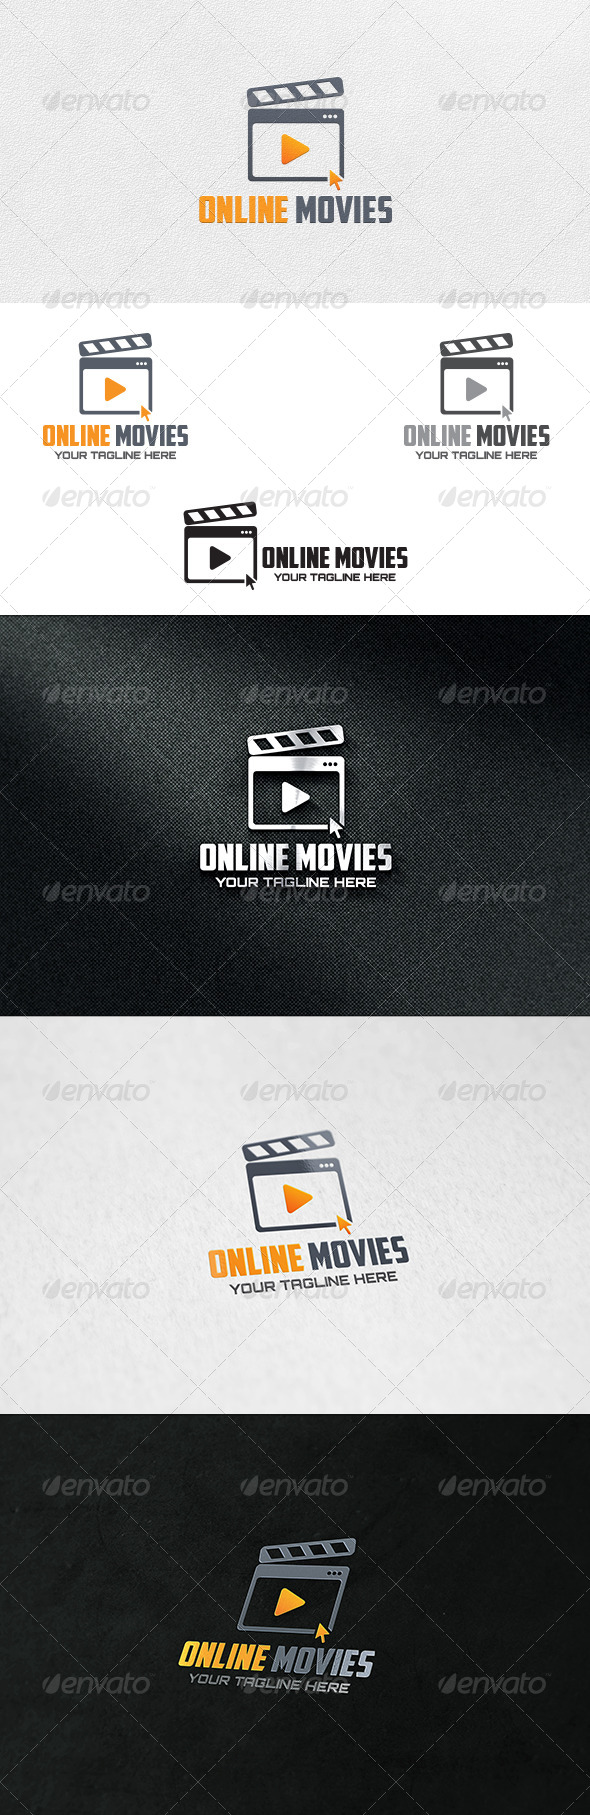 GraphicRiver Online Movies Logo Template 6804806